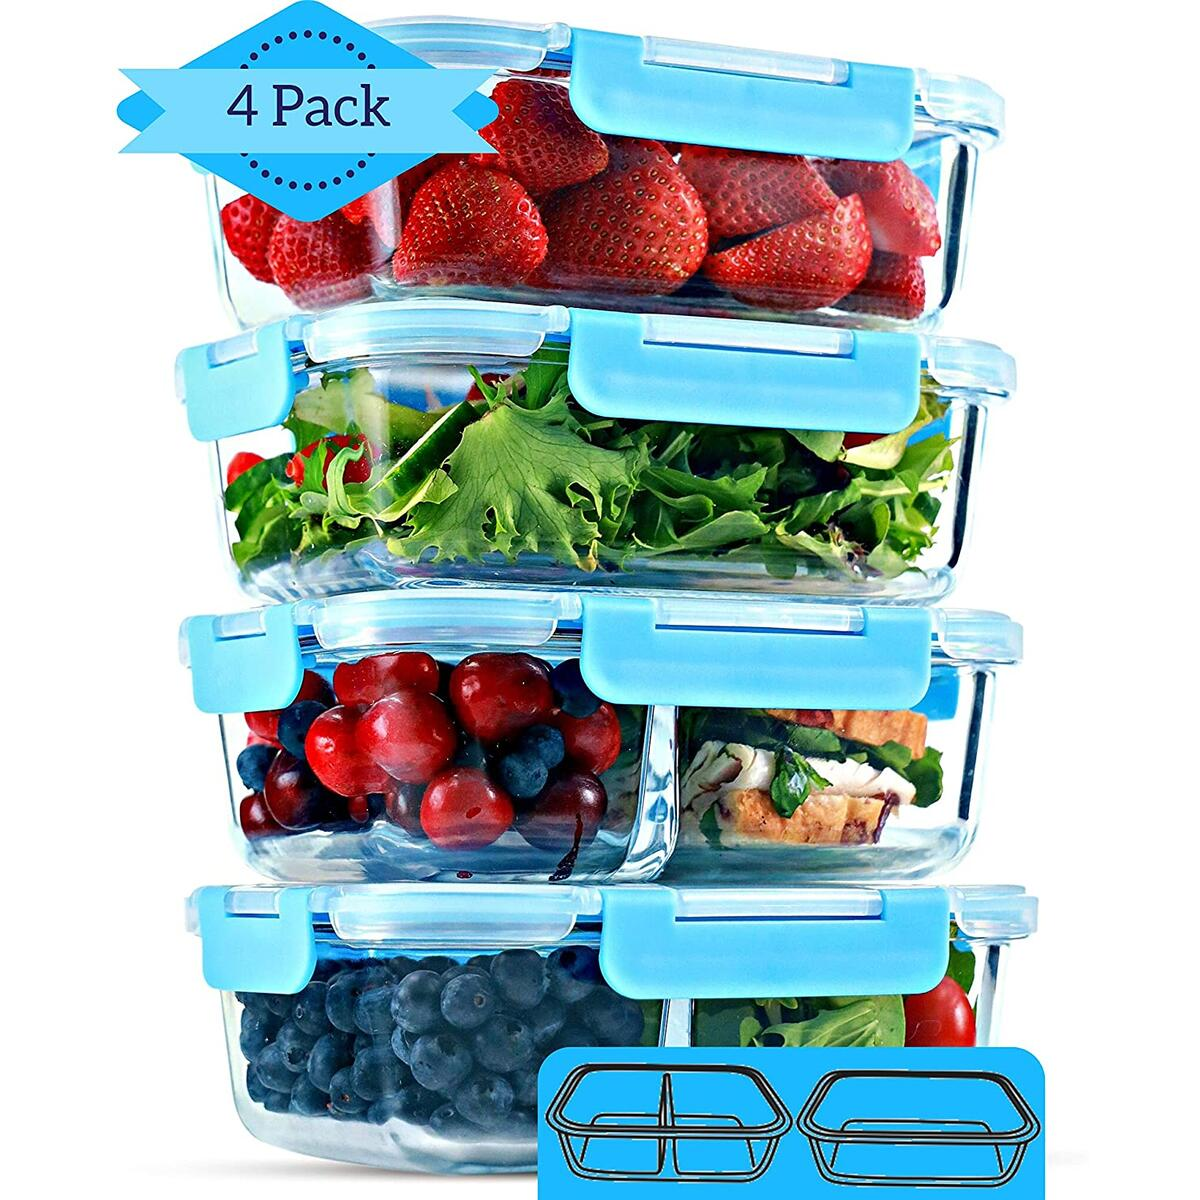 2 & 3 Compartment Glass Meal Prep Containers (4 Pack, 32 oz) - Glass Food Storage Containers with Lids